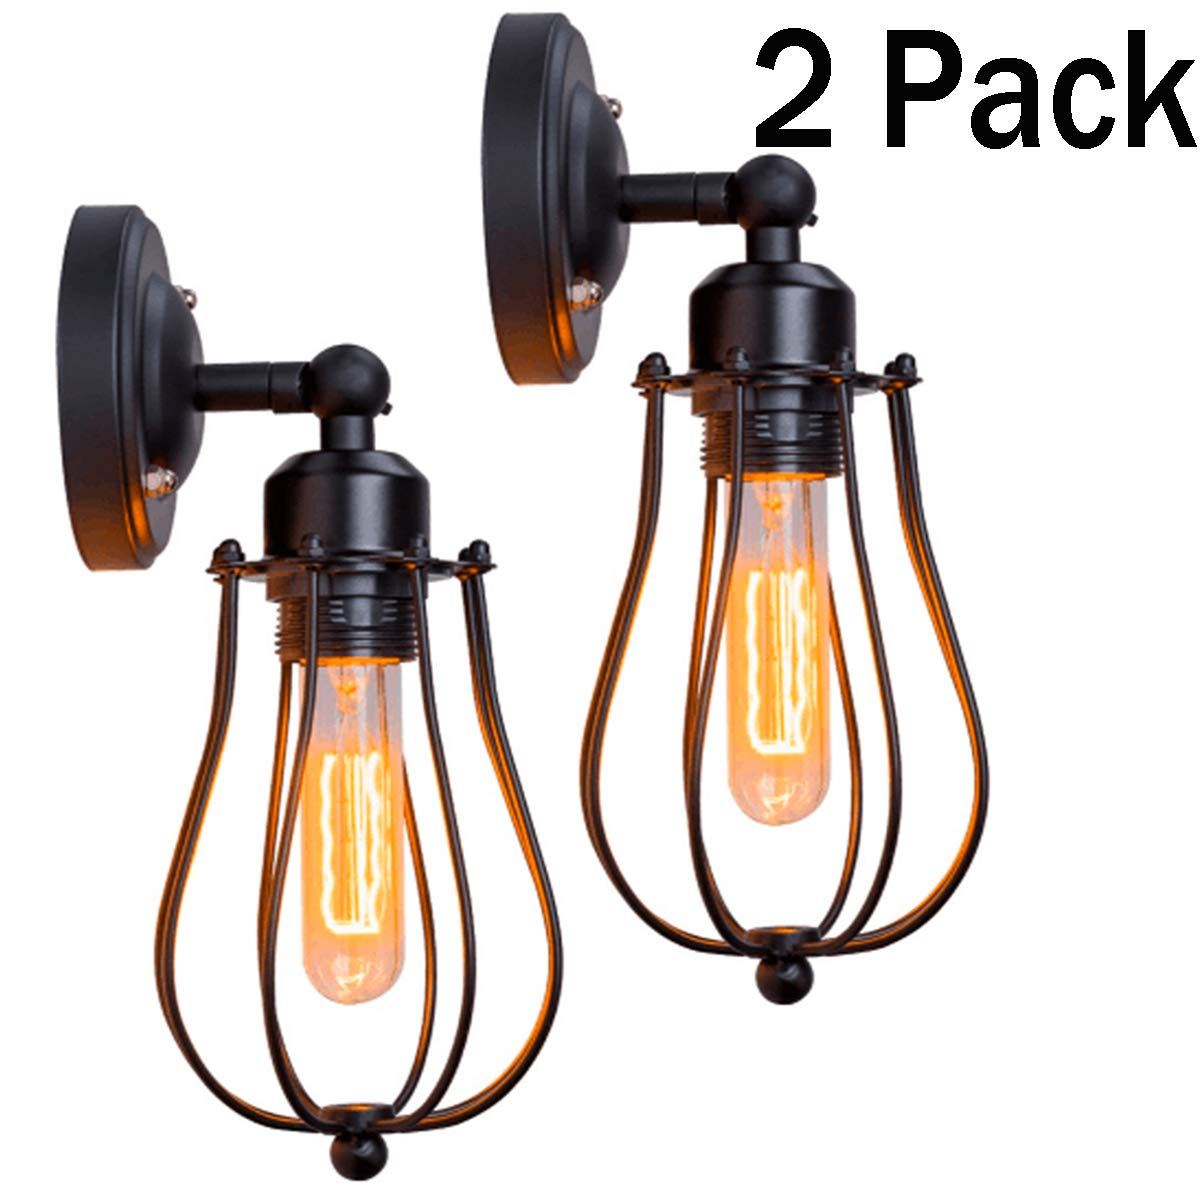 Wire Cage Wall Sconce Licperron Adjustable Industrial Wall Sconce 2 Pack Vintage Style Bedroom Garage Porch Mirror(Bulbs not included)